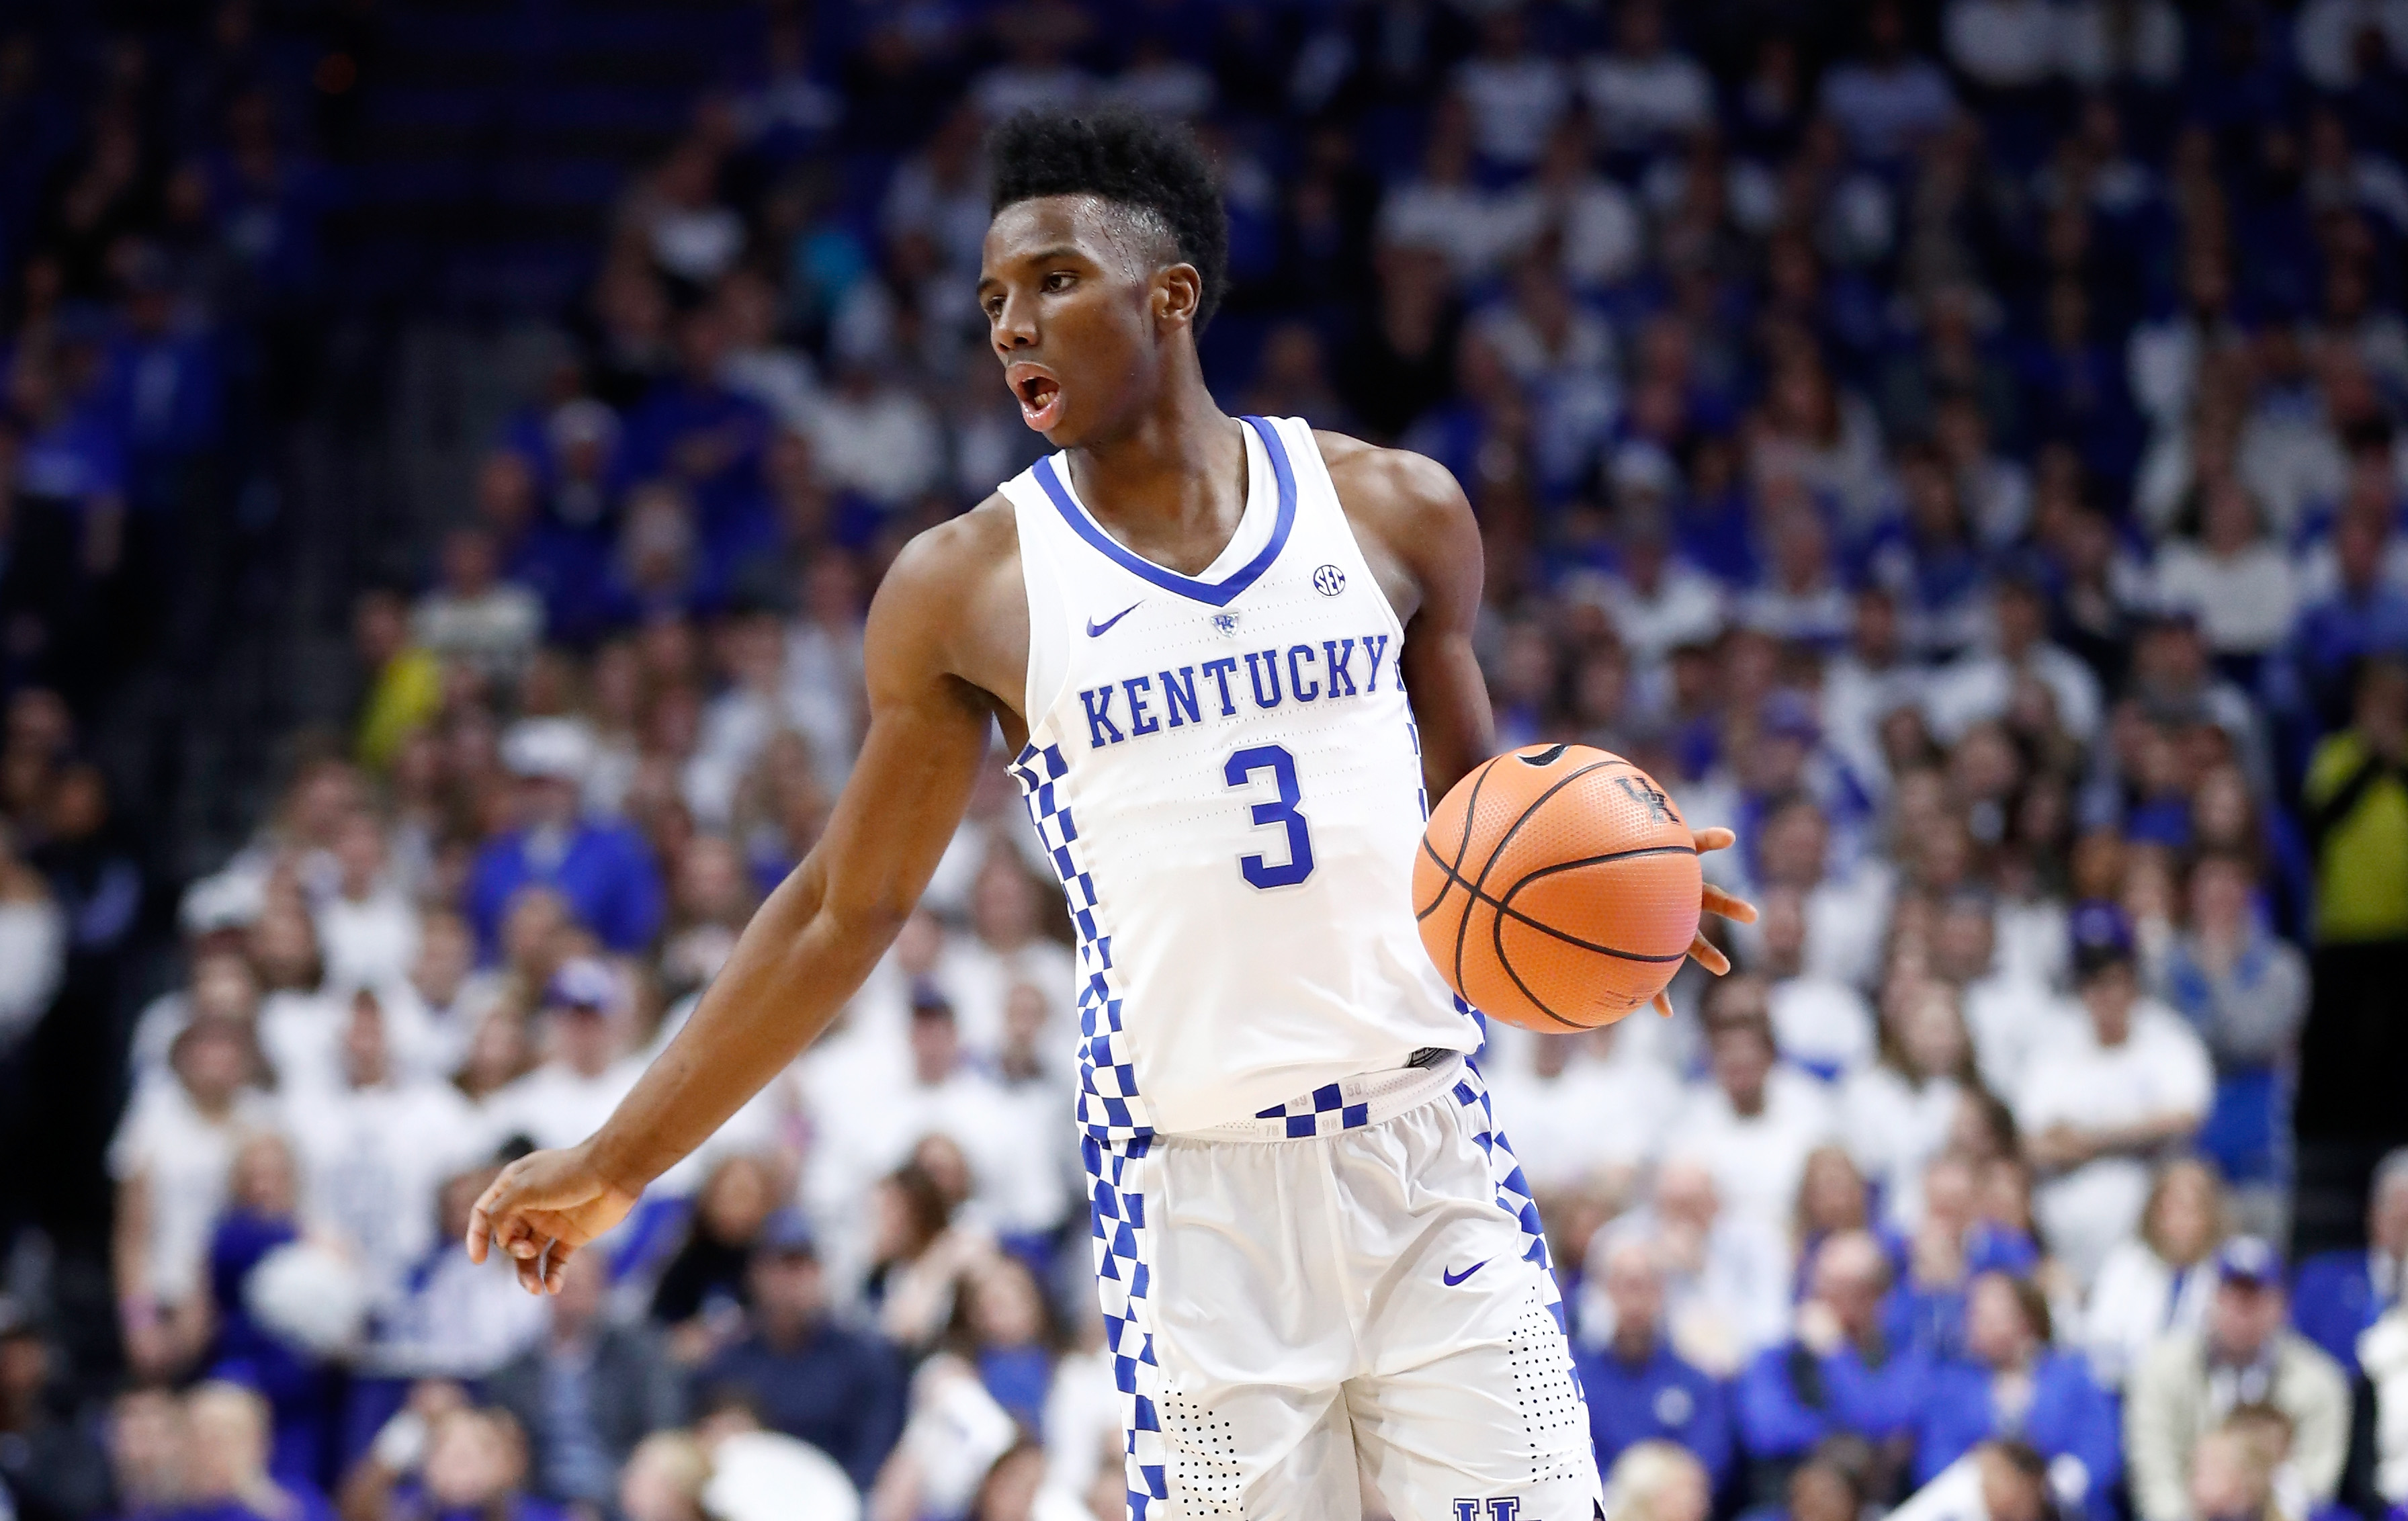 Kentucky basketball: 3 keys vs Florida, prediction, TV/ radio